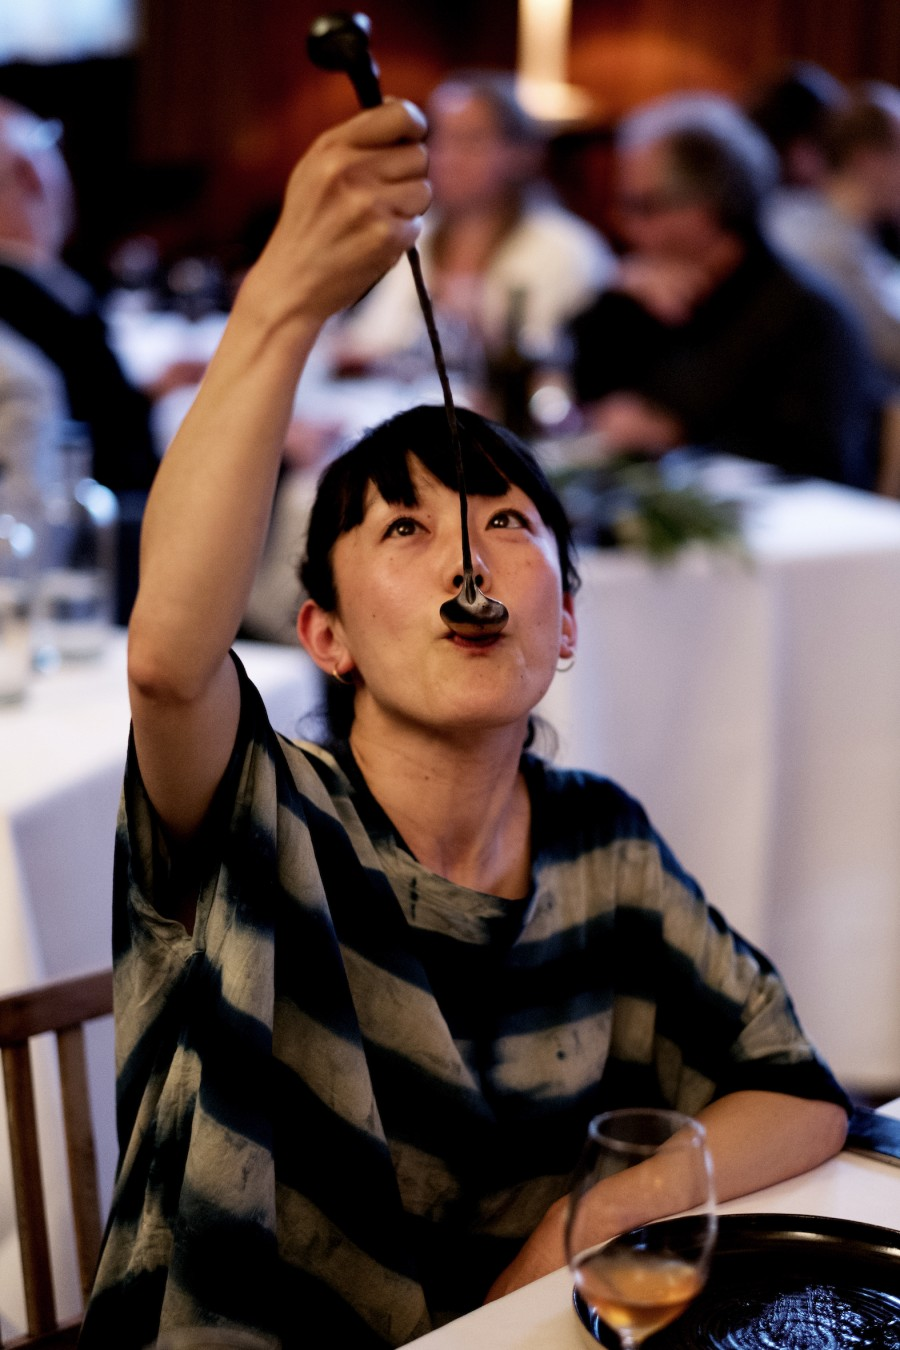 Eating with a 'Wrench' spoon by Nils Hint. Photography by Duncan de Fey.